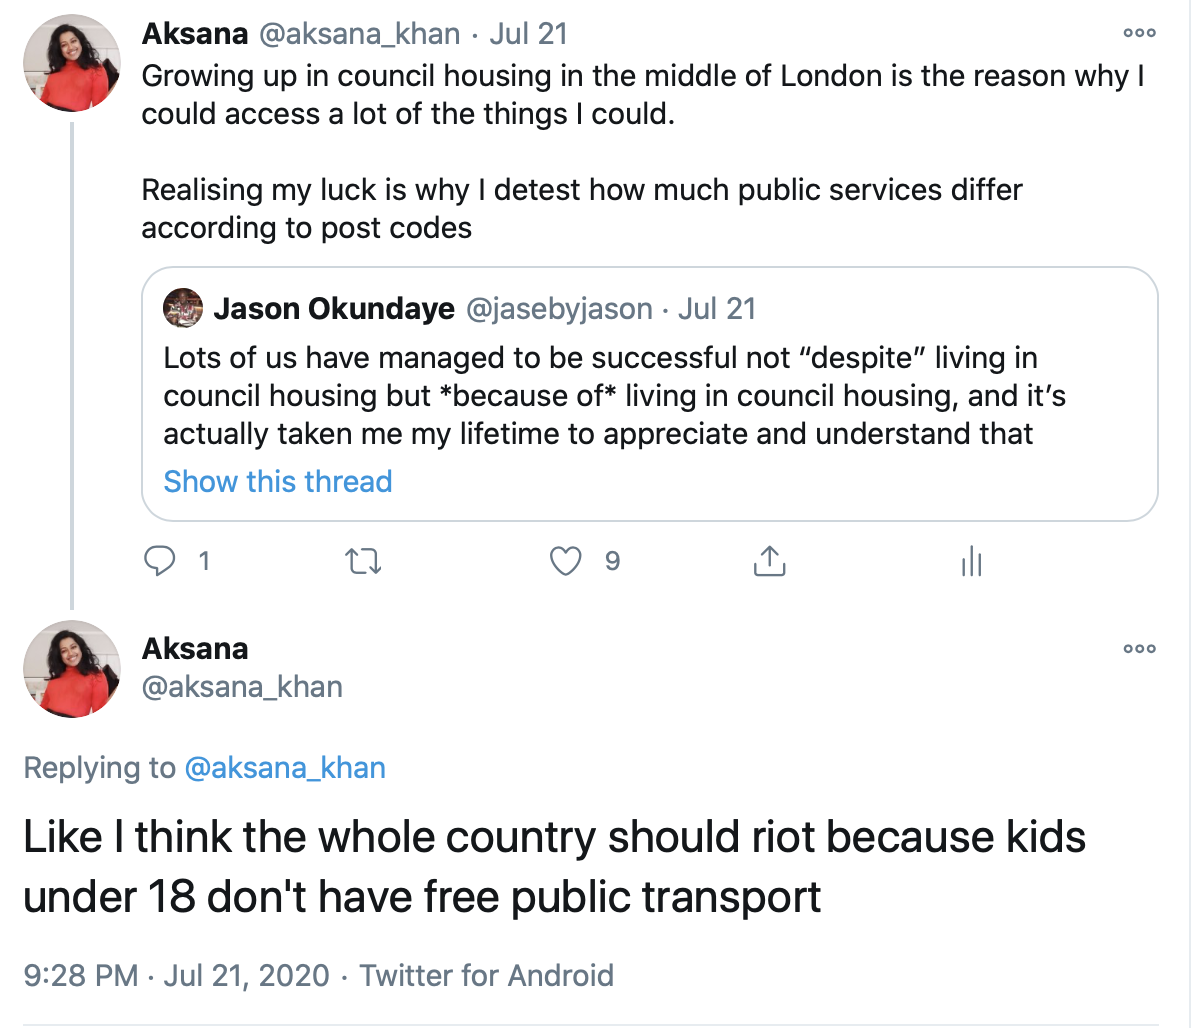 """A screen shot of two tweets by Aksana.   Jason Okundaye tweeted """"Lots of us have managed to be successful not """"despite"""" living in council housing, and it's actually taken me my lifetime to appreciate and understand that""""  Aksana retweeted and added """"Growing up in council housing in the middle of London is the reason why I could access a lot of the things I could. Realising my luck is why I detest how much public services differ according to post codes. Like I think the whole country should riot because kids under 18 don't have free public transport."""""""